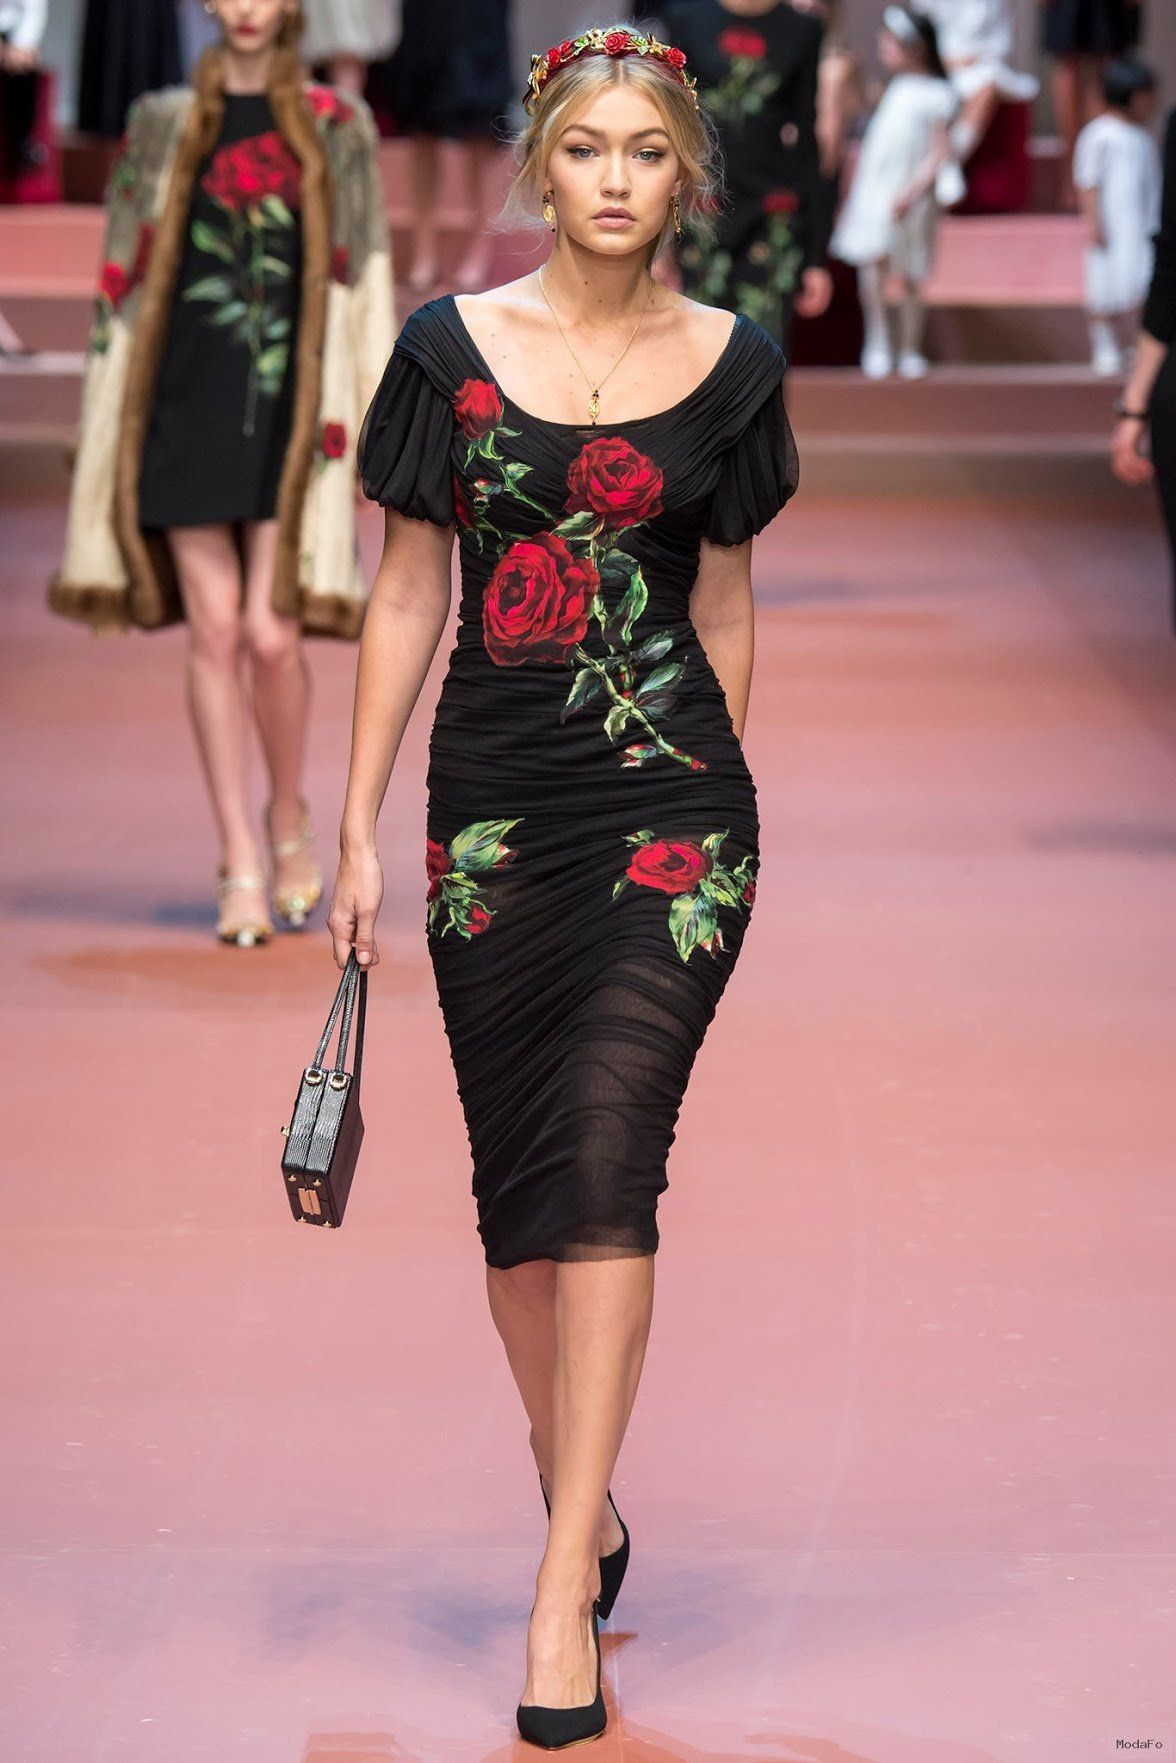 240a7527db51d Gigi Hadid  Dolce and Gabbana Fashion Show 2015 -02 – GotCeleb ...